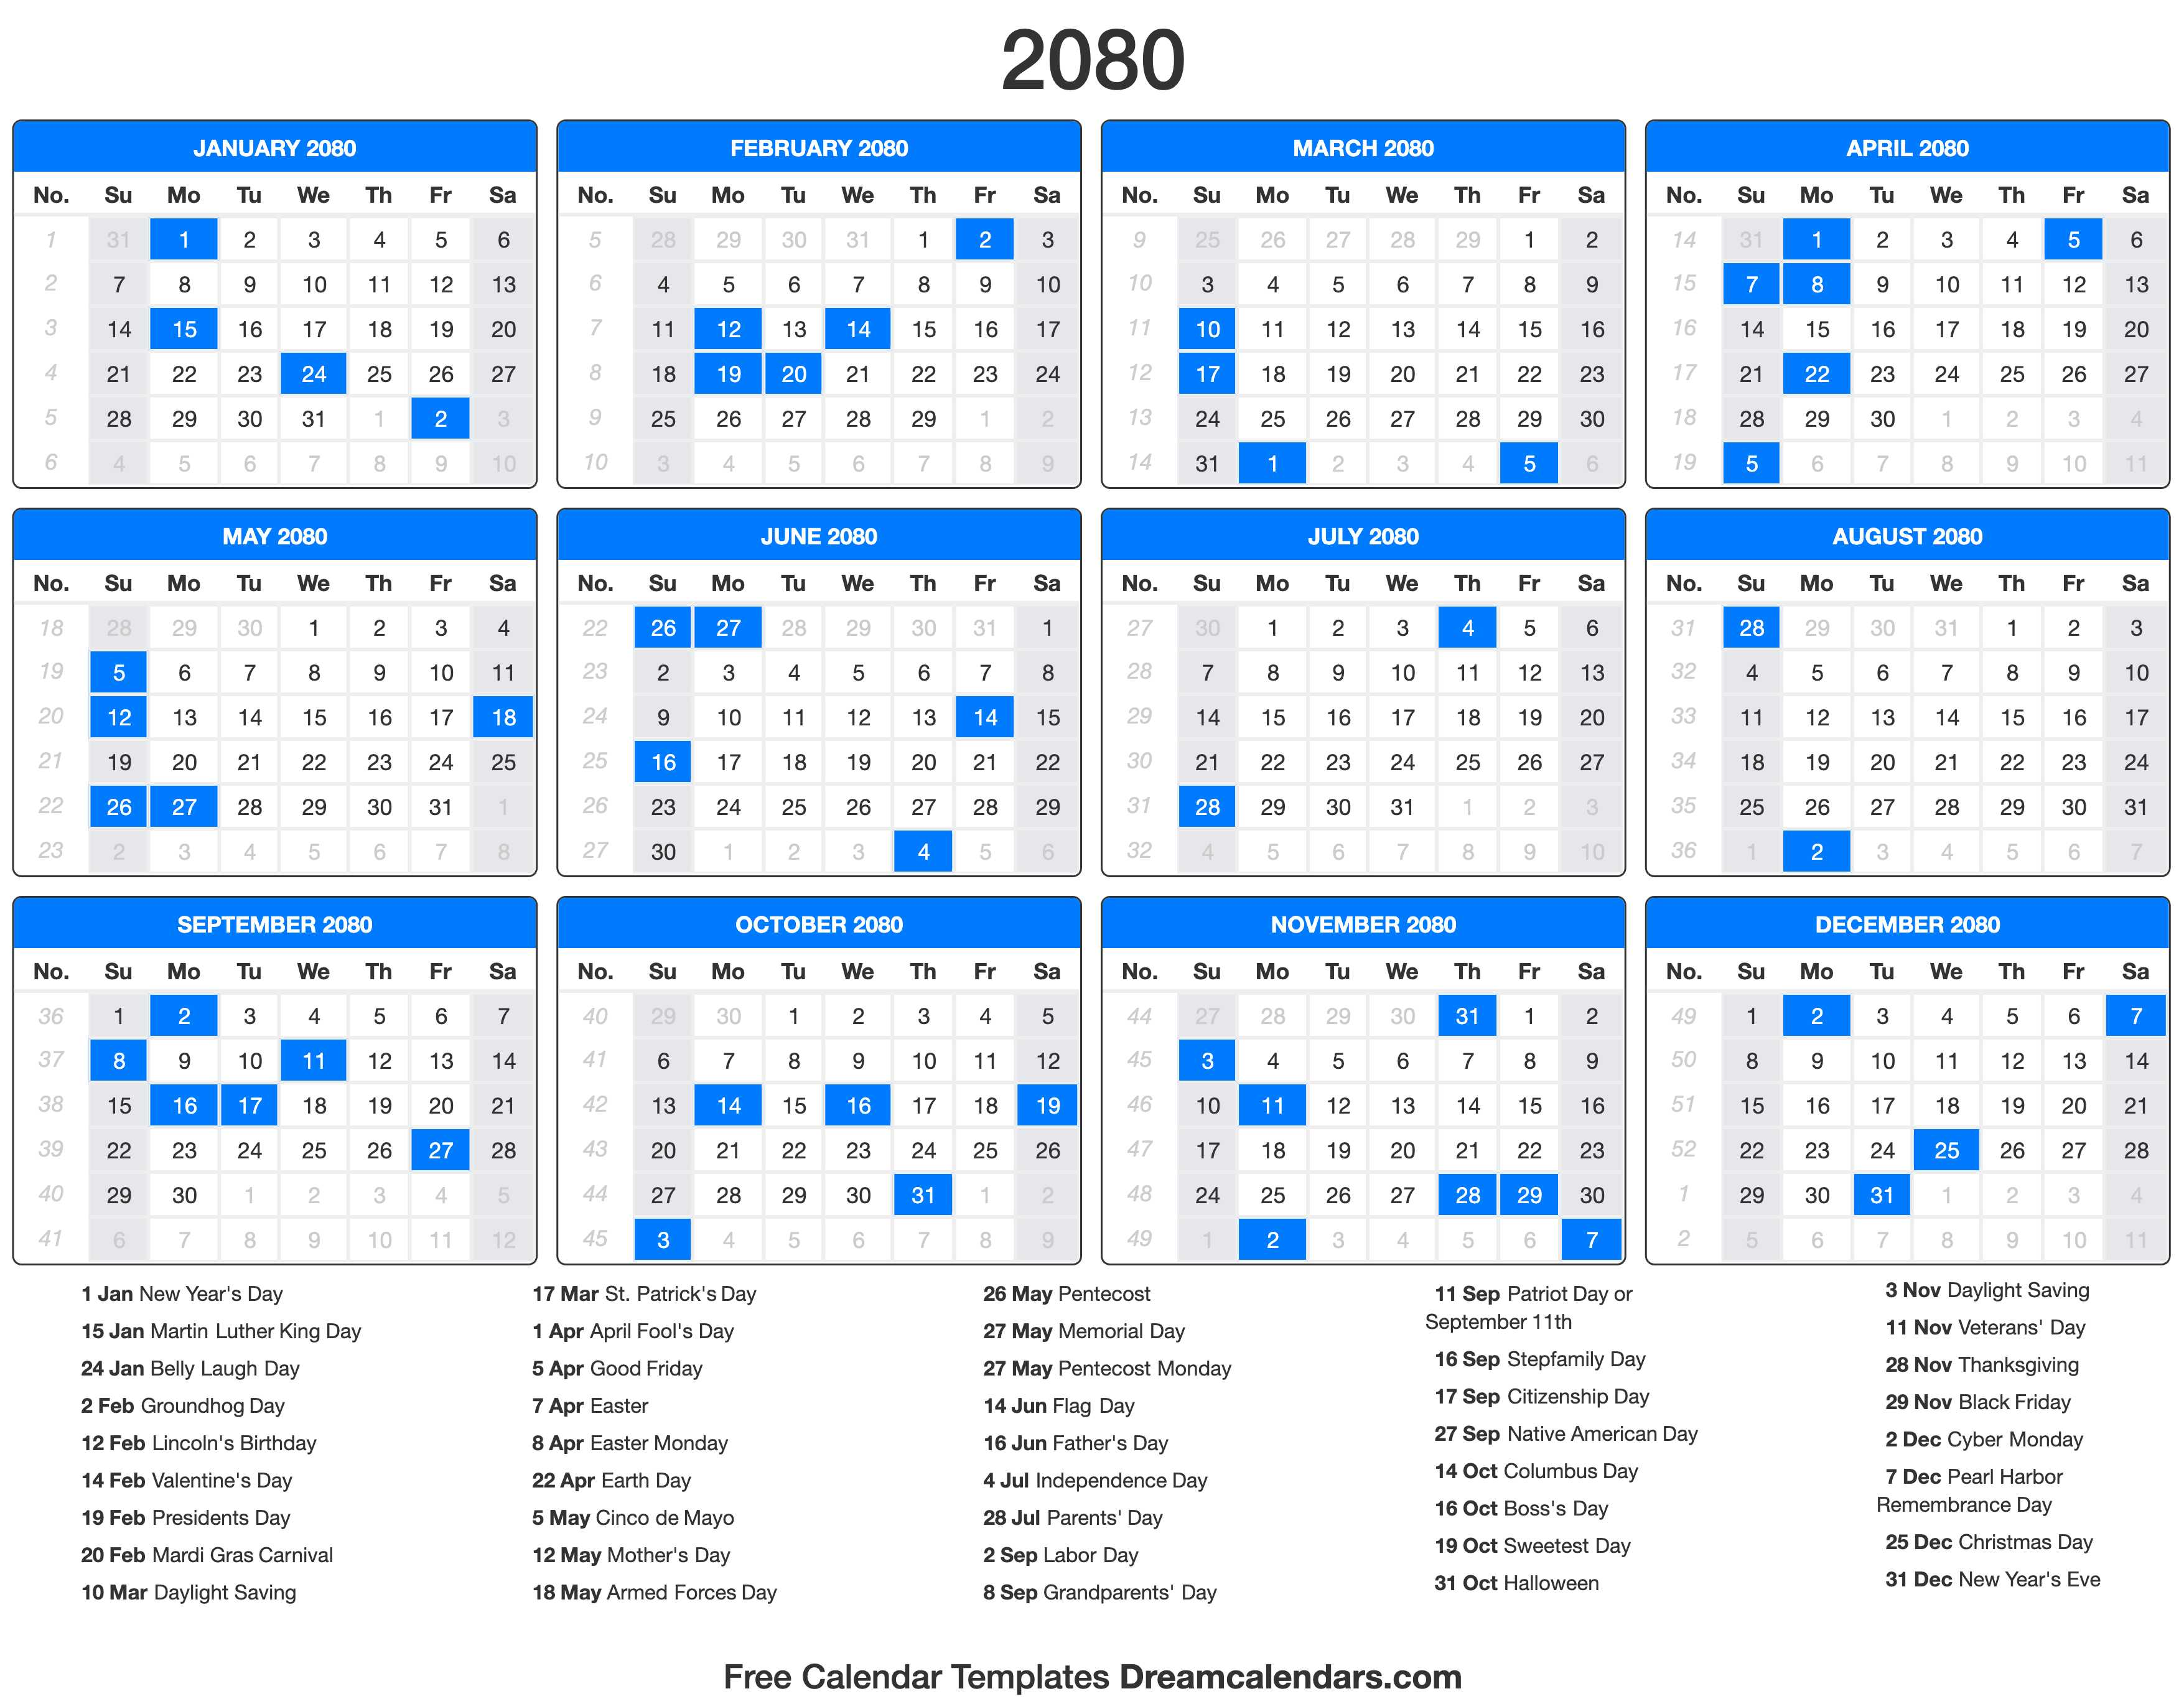 2080 Calendar with holidays